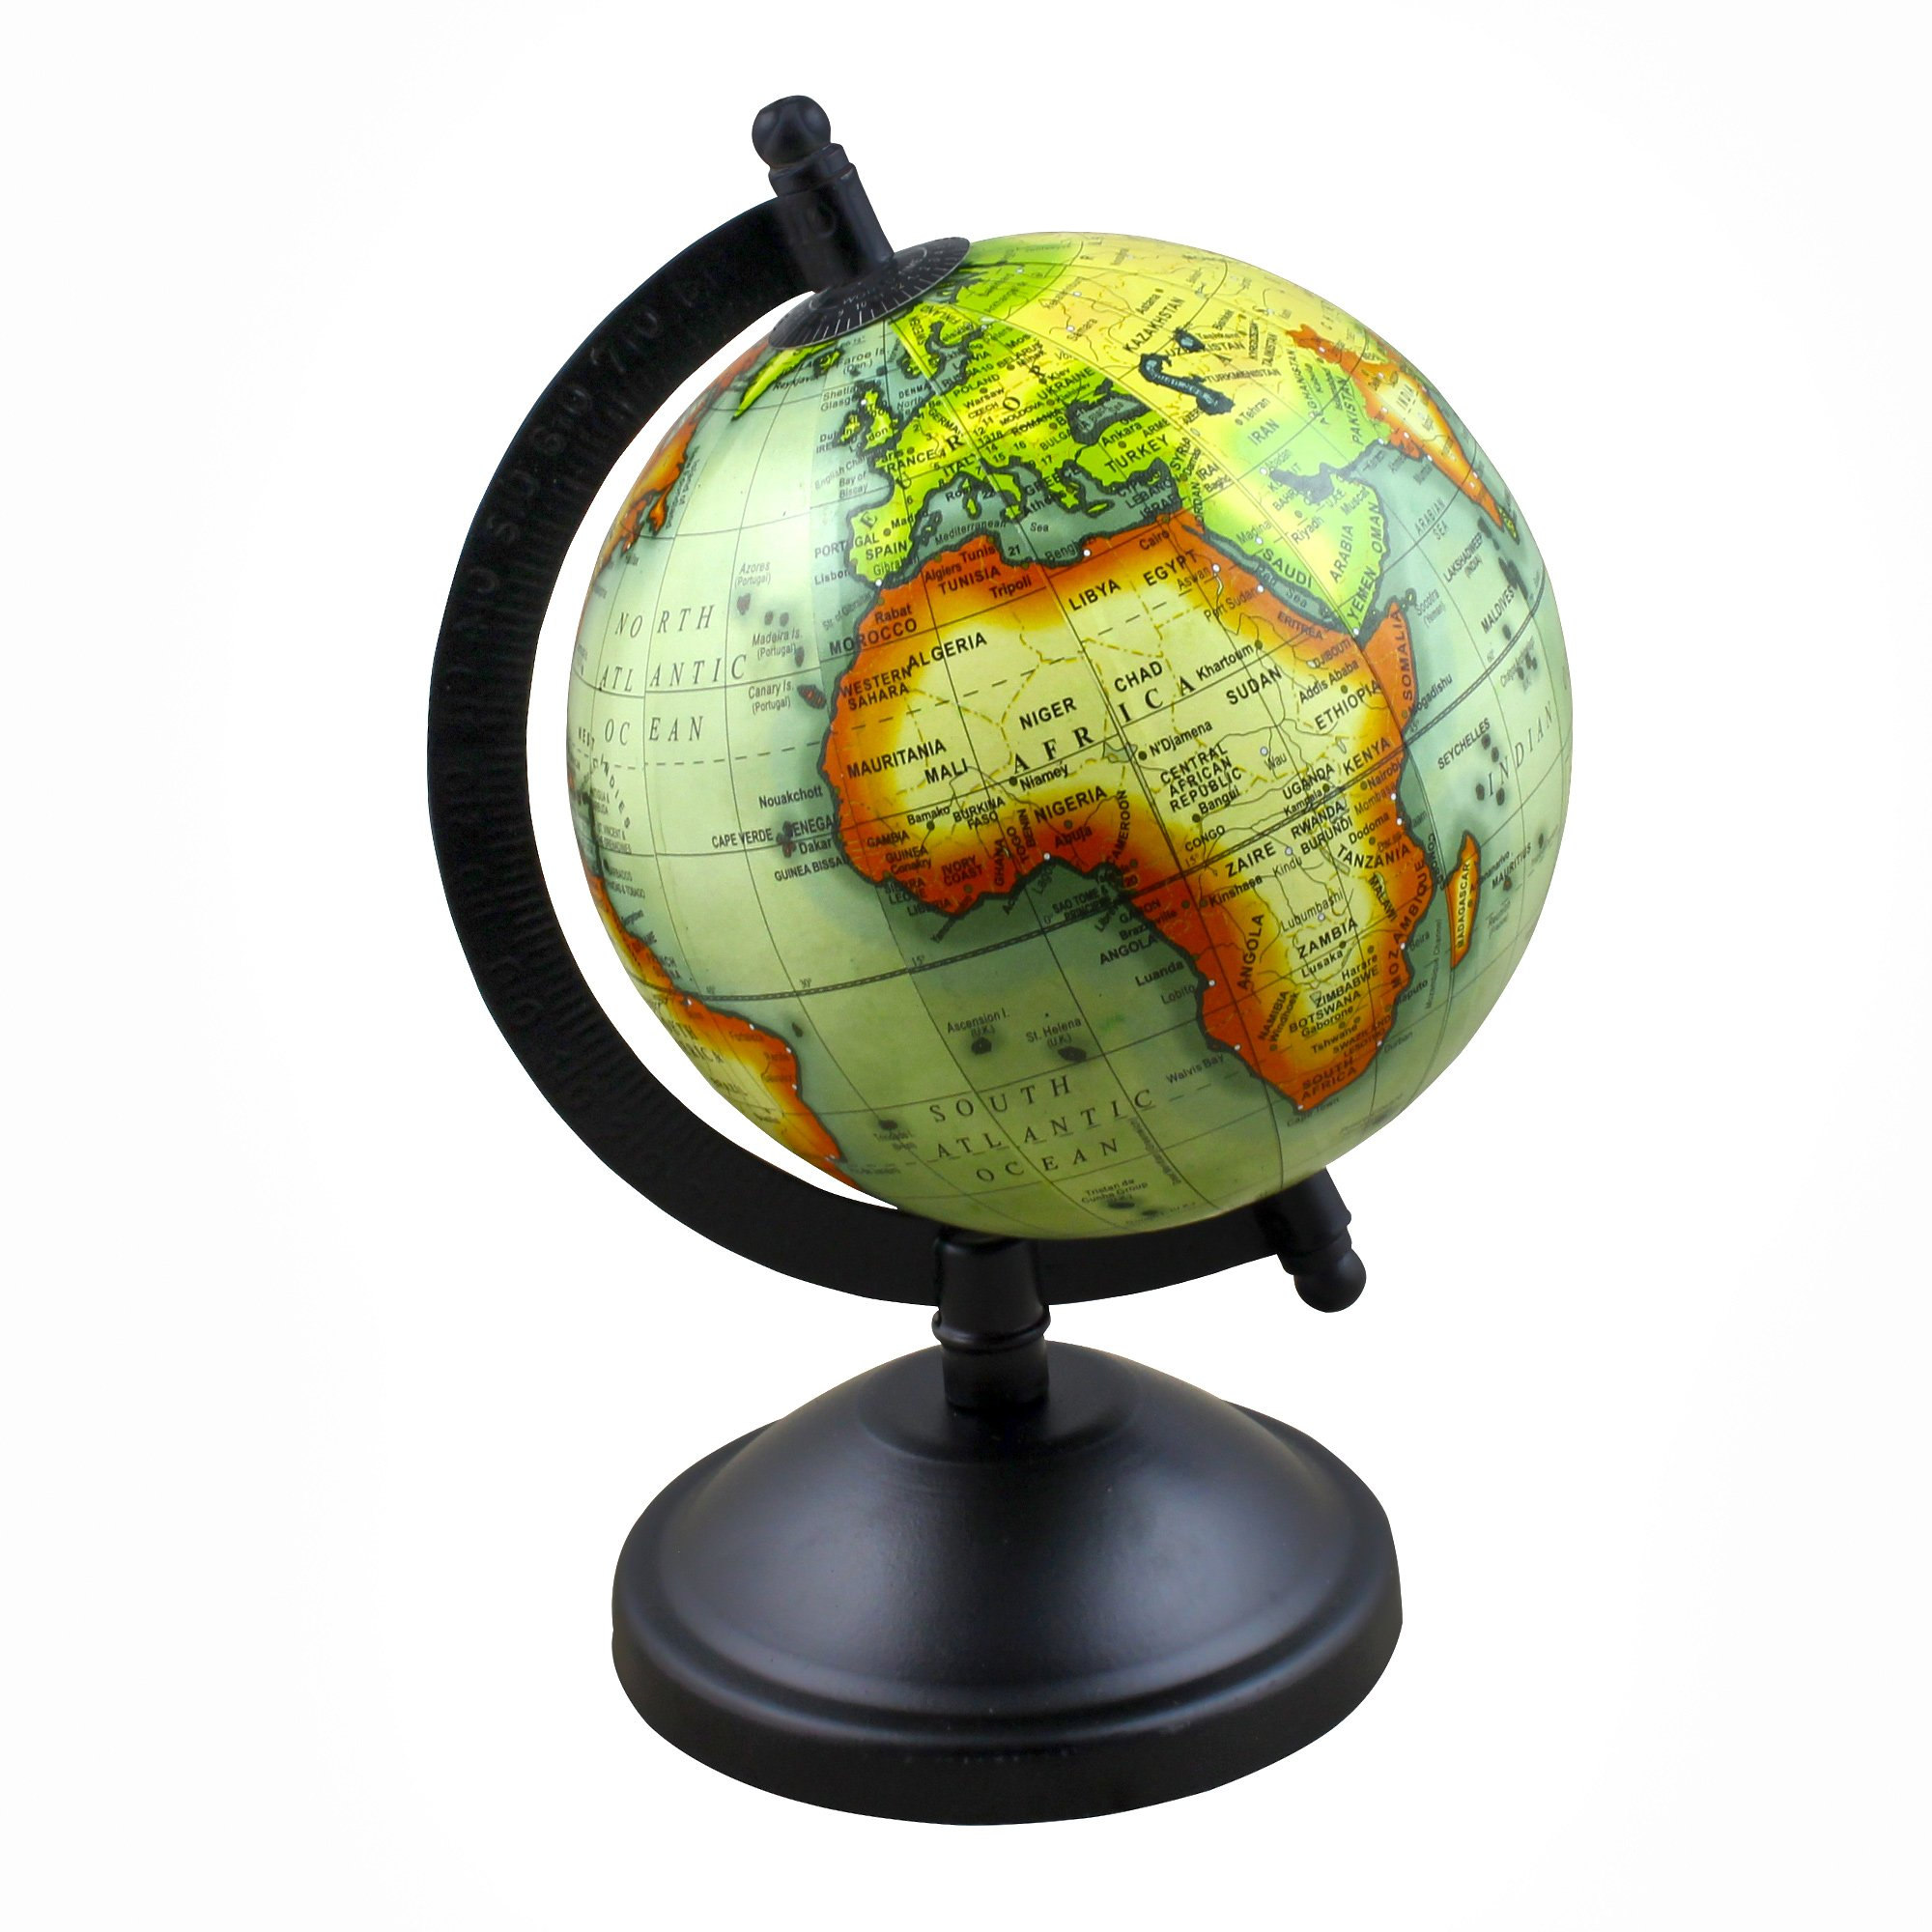 Decorative Desktop World Globe Earth Geography Map with Stand, 8 Inches for Office, Classroom, Kids Room & Home Decor Gift - Stock Clearance Sale!!